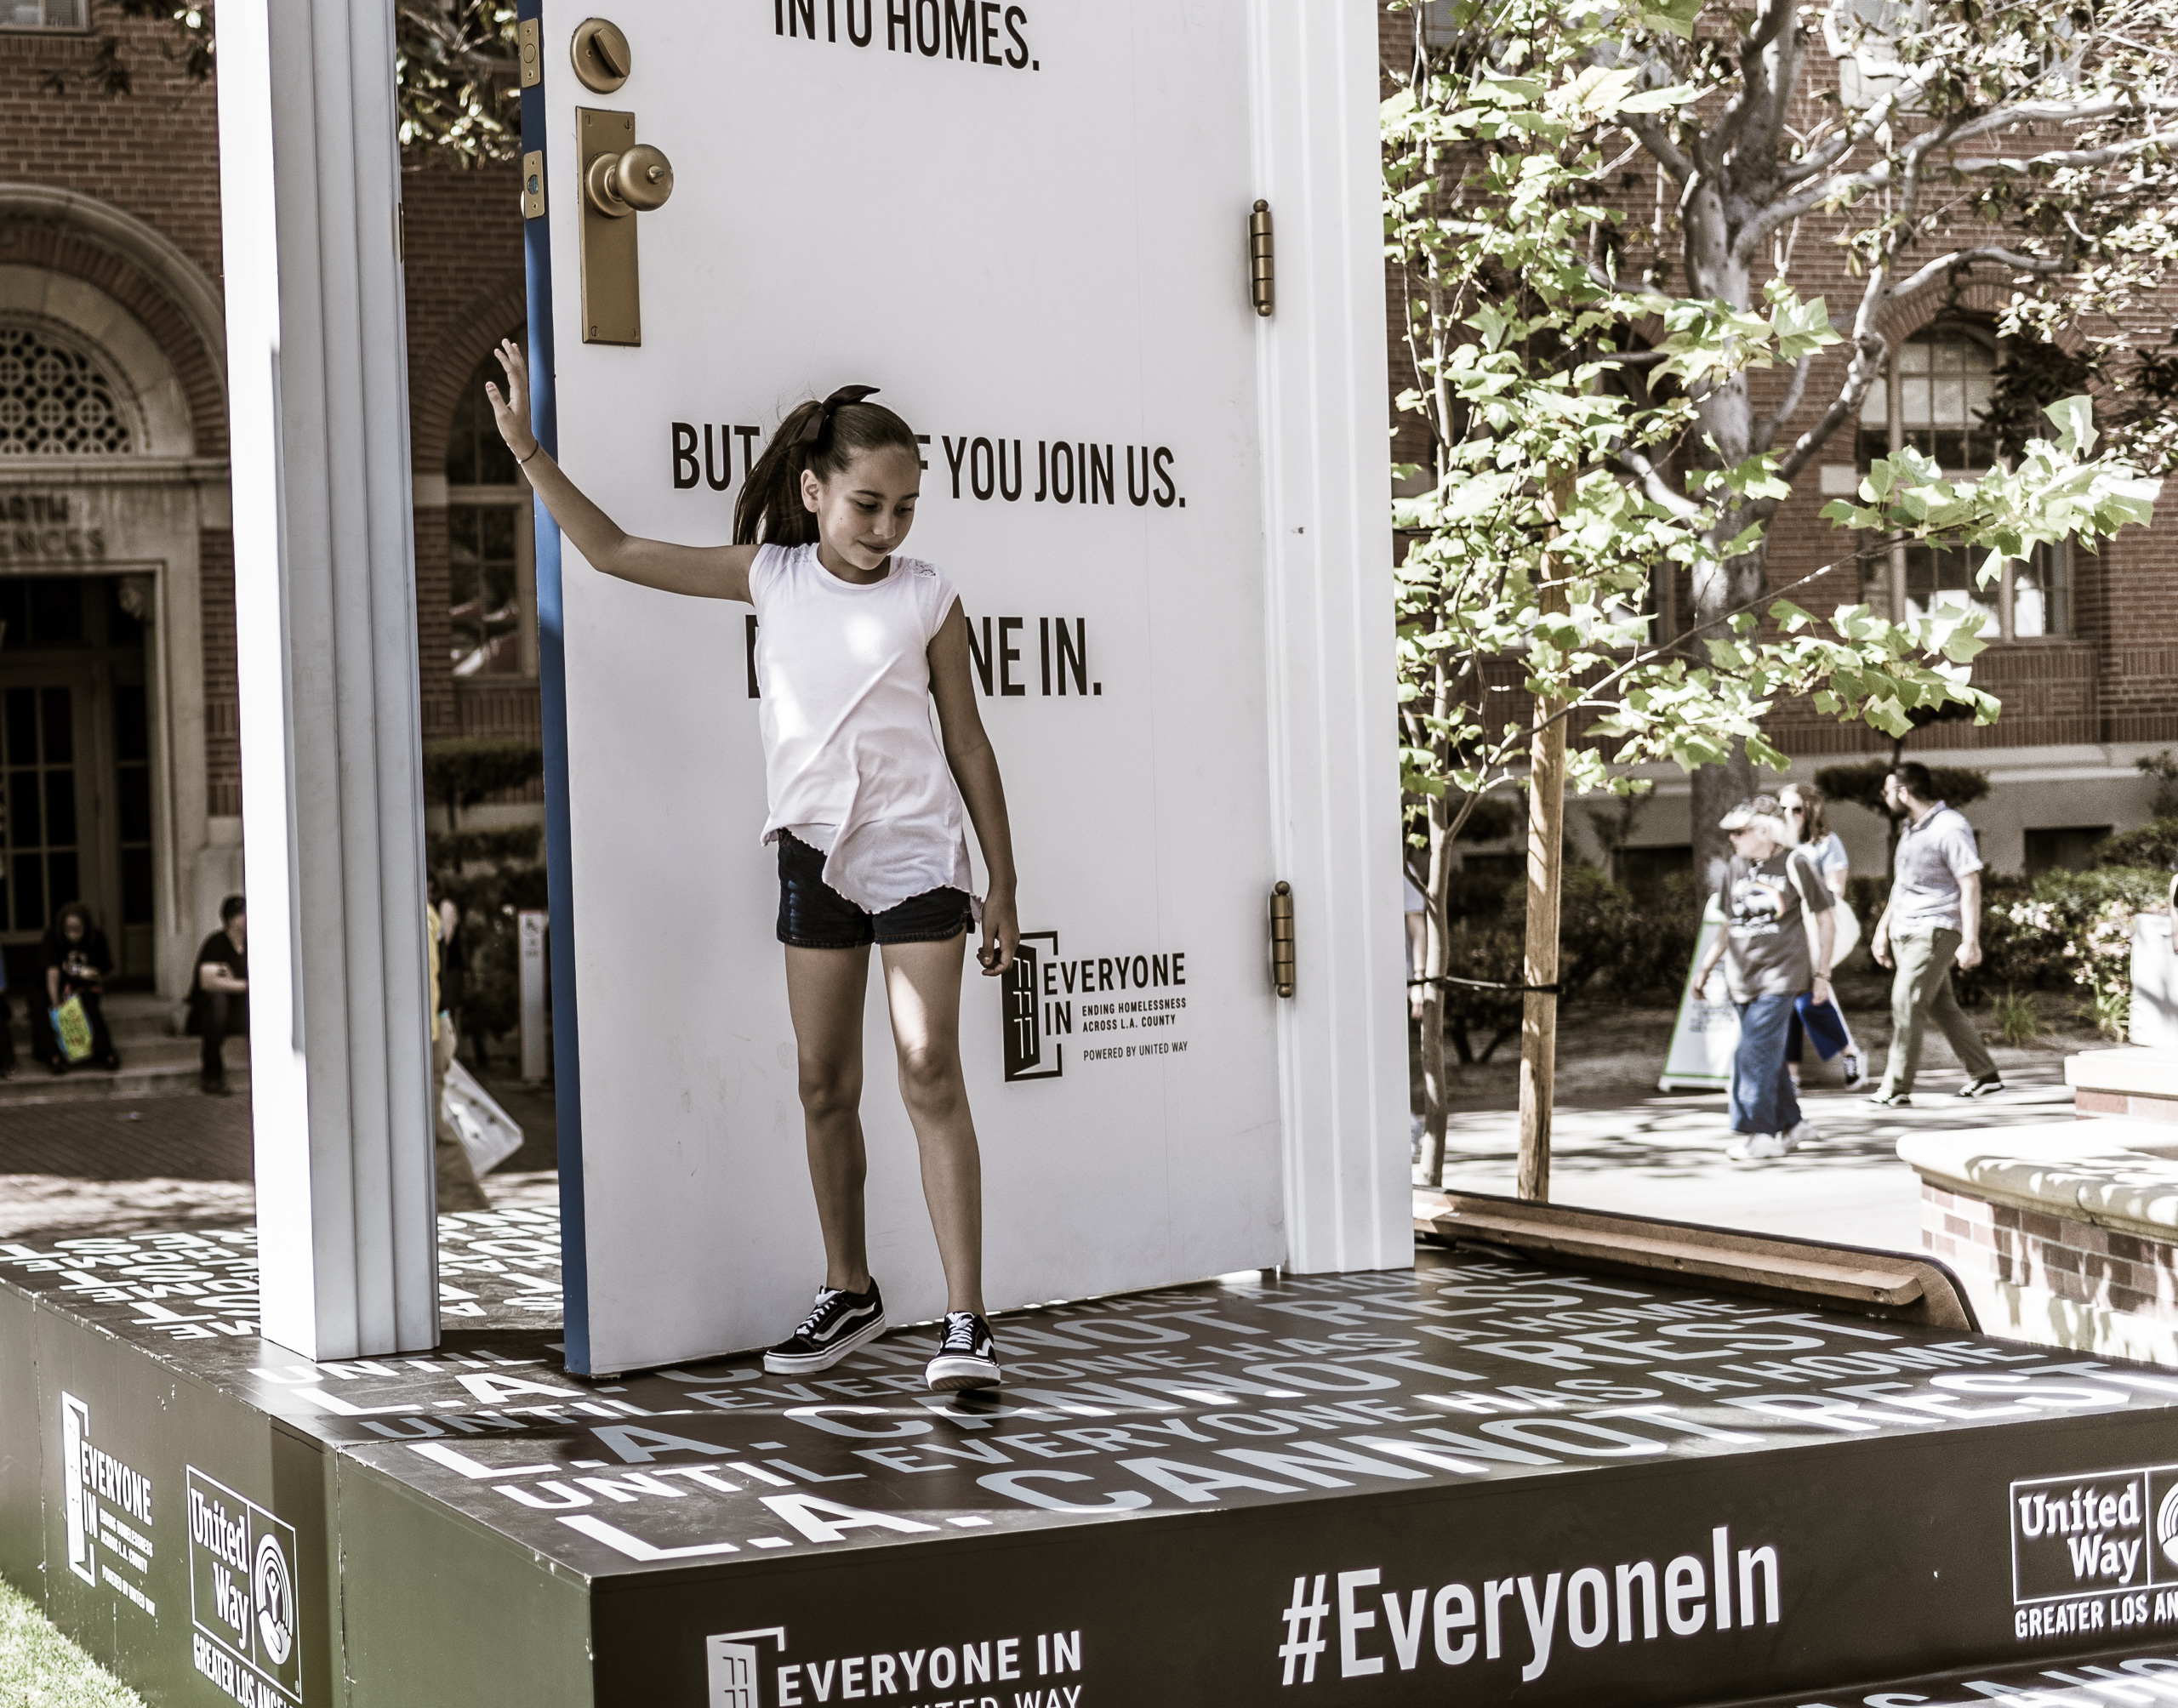 a young girl stands against a huge door with text on it. The text talks about the United Way's #EveryoneIn project to end homelessness in Los Angeles